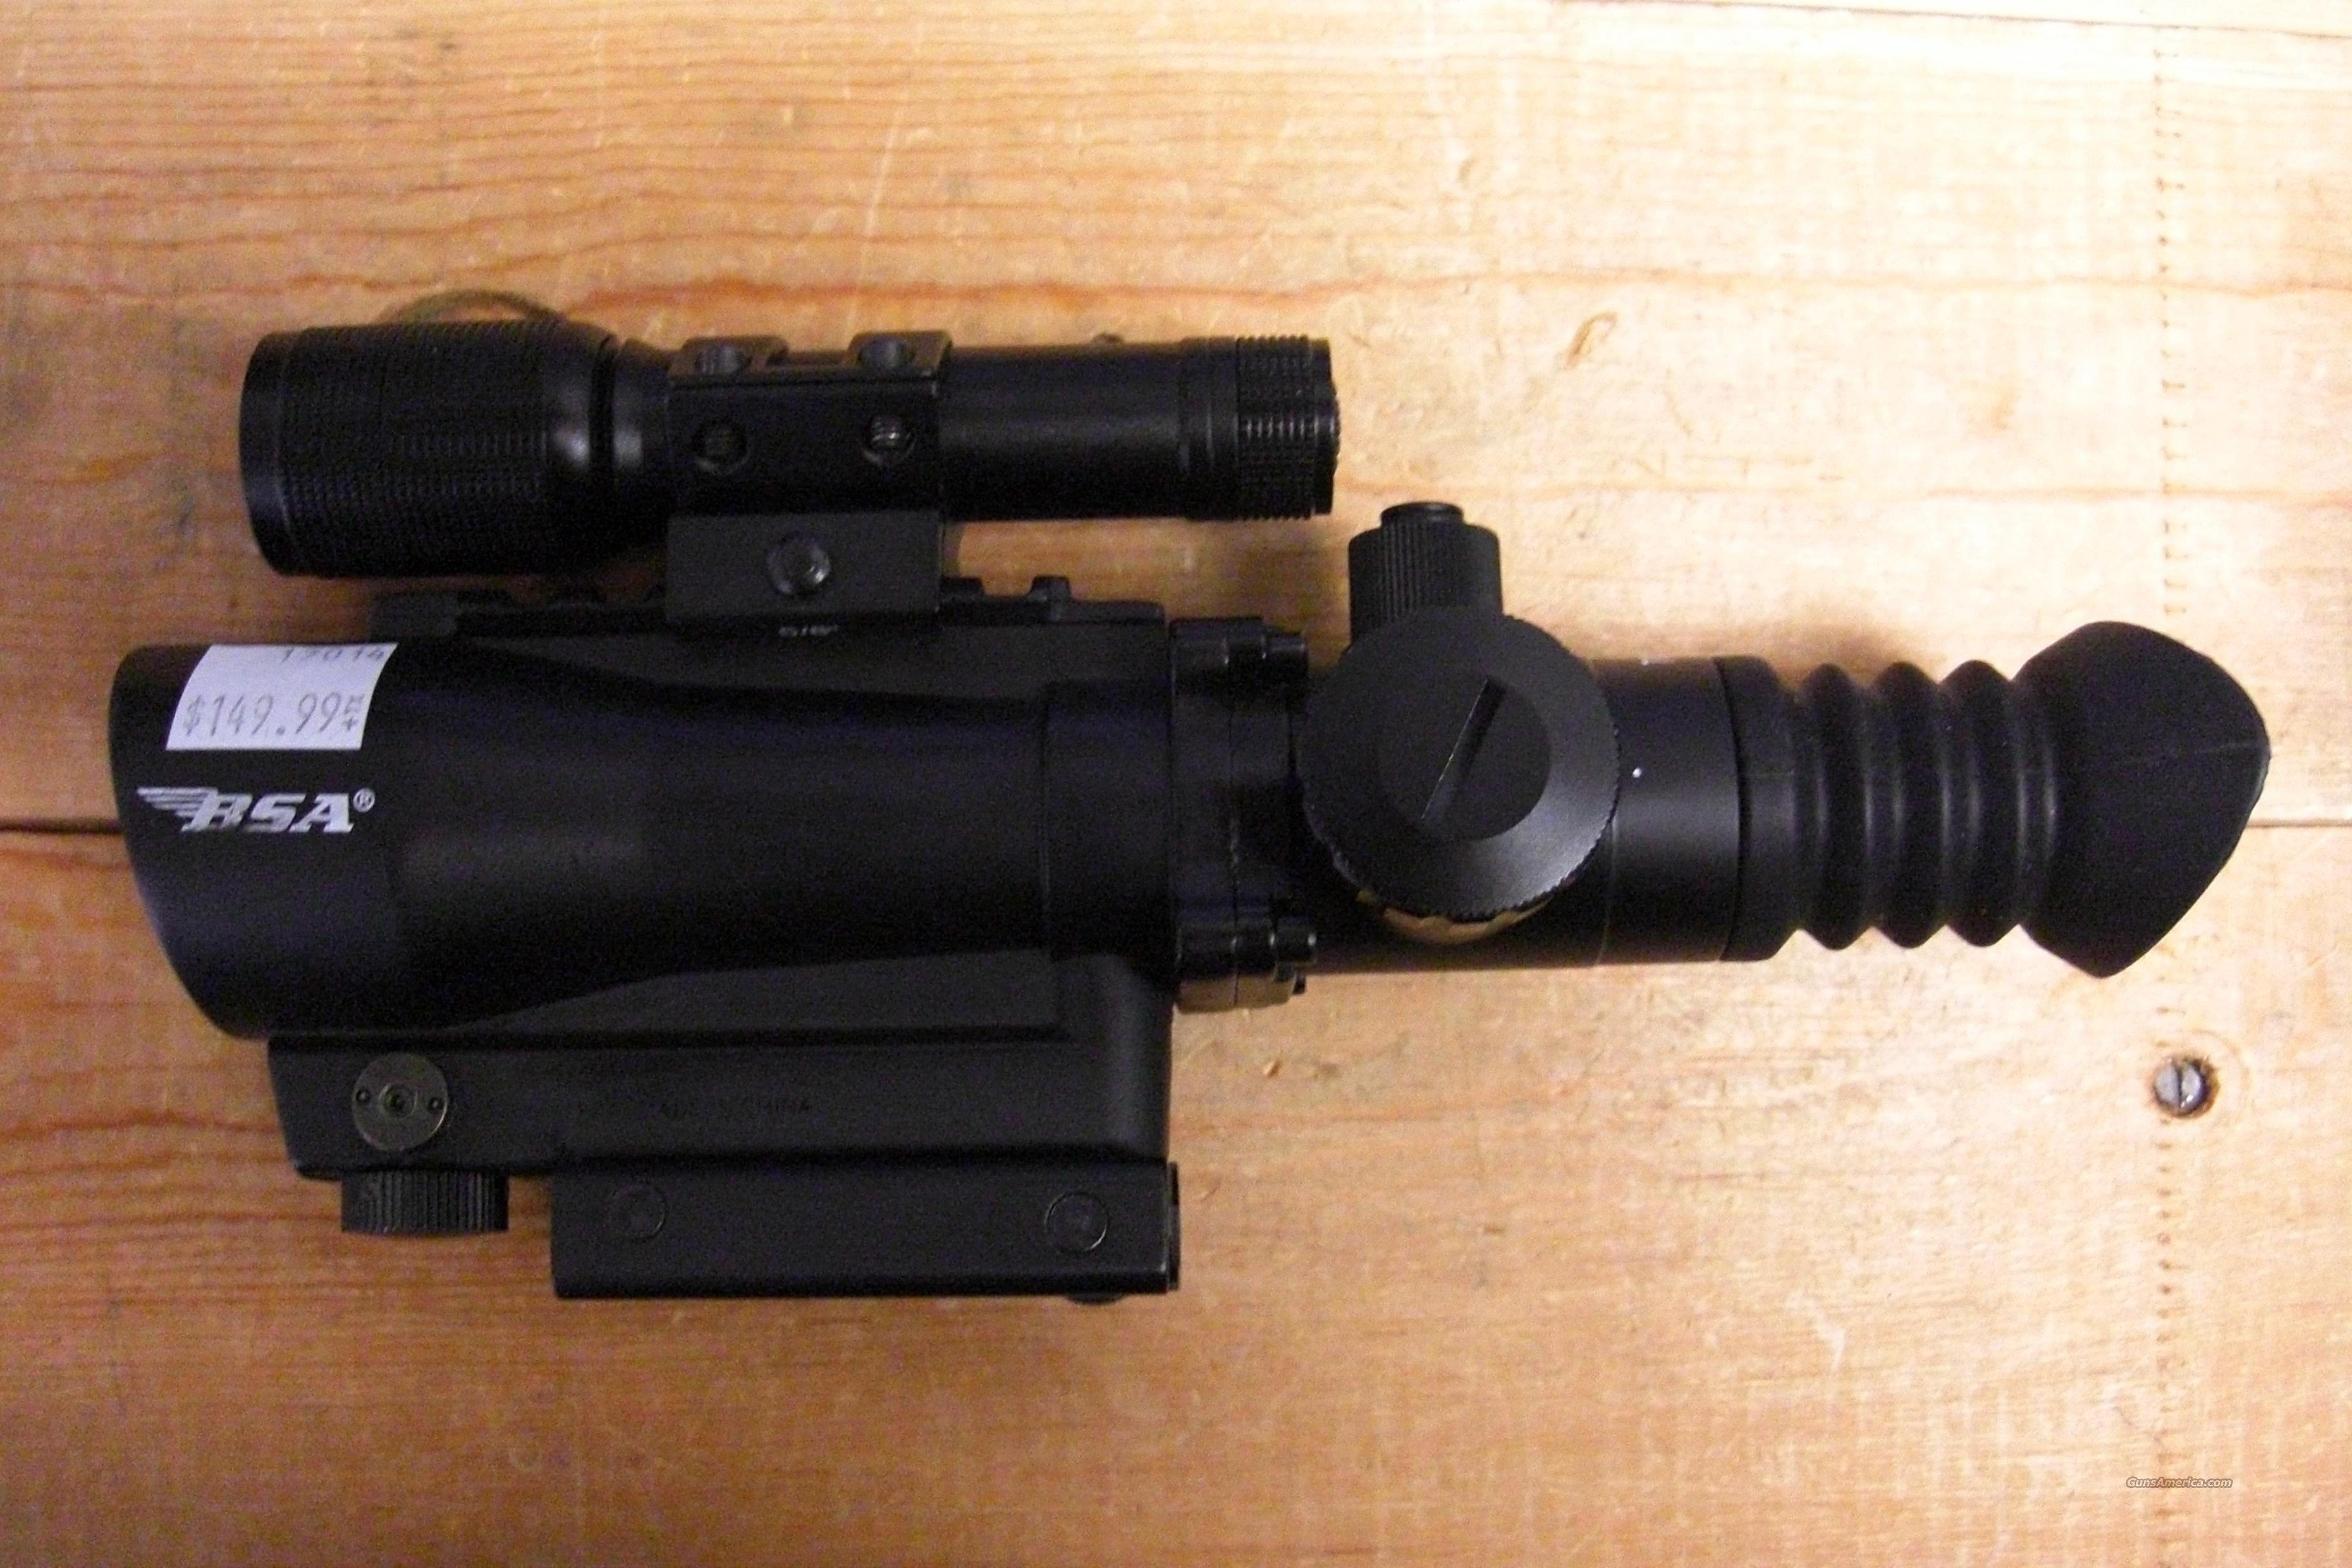 BSA Tactical Weapon Illuminated Sight  Non-Guns > Scopes/Mounts/Rings & Optics > Tactical Scopes > Red Dot